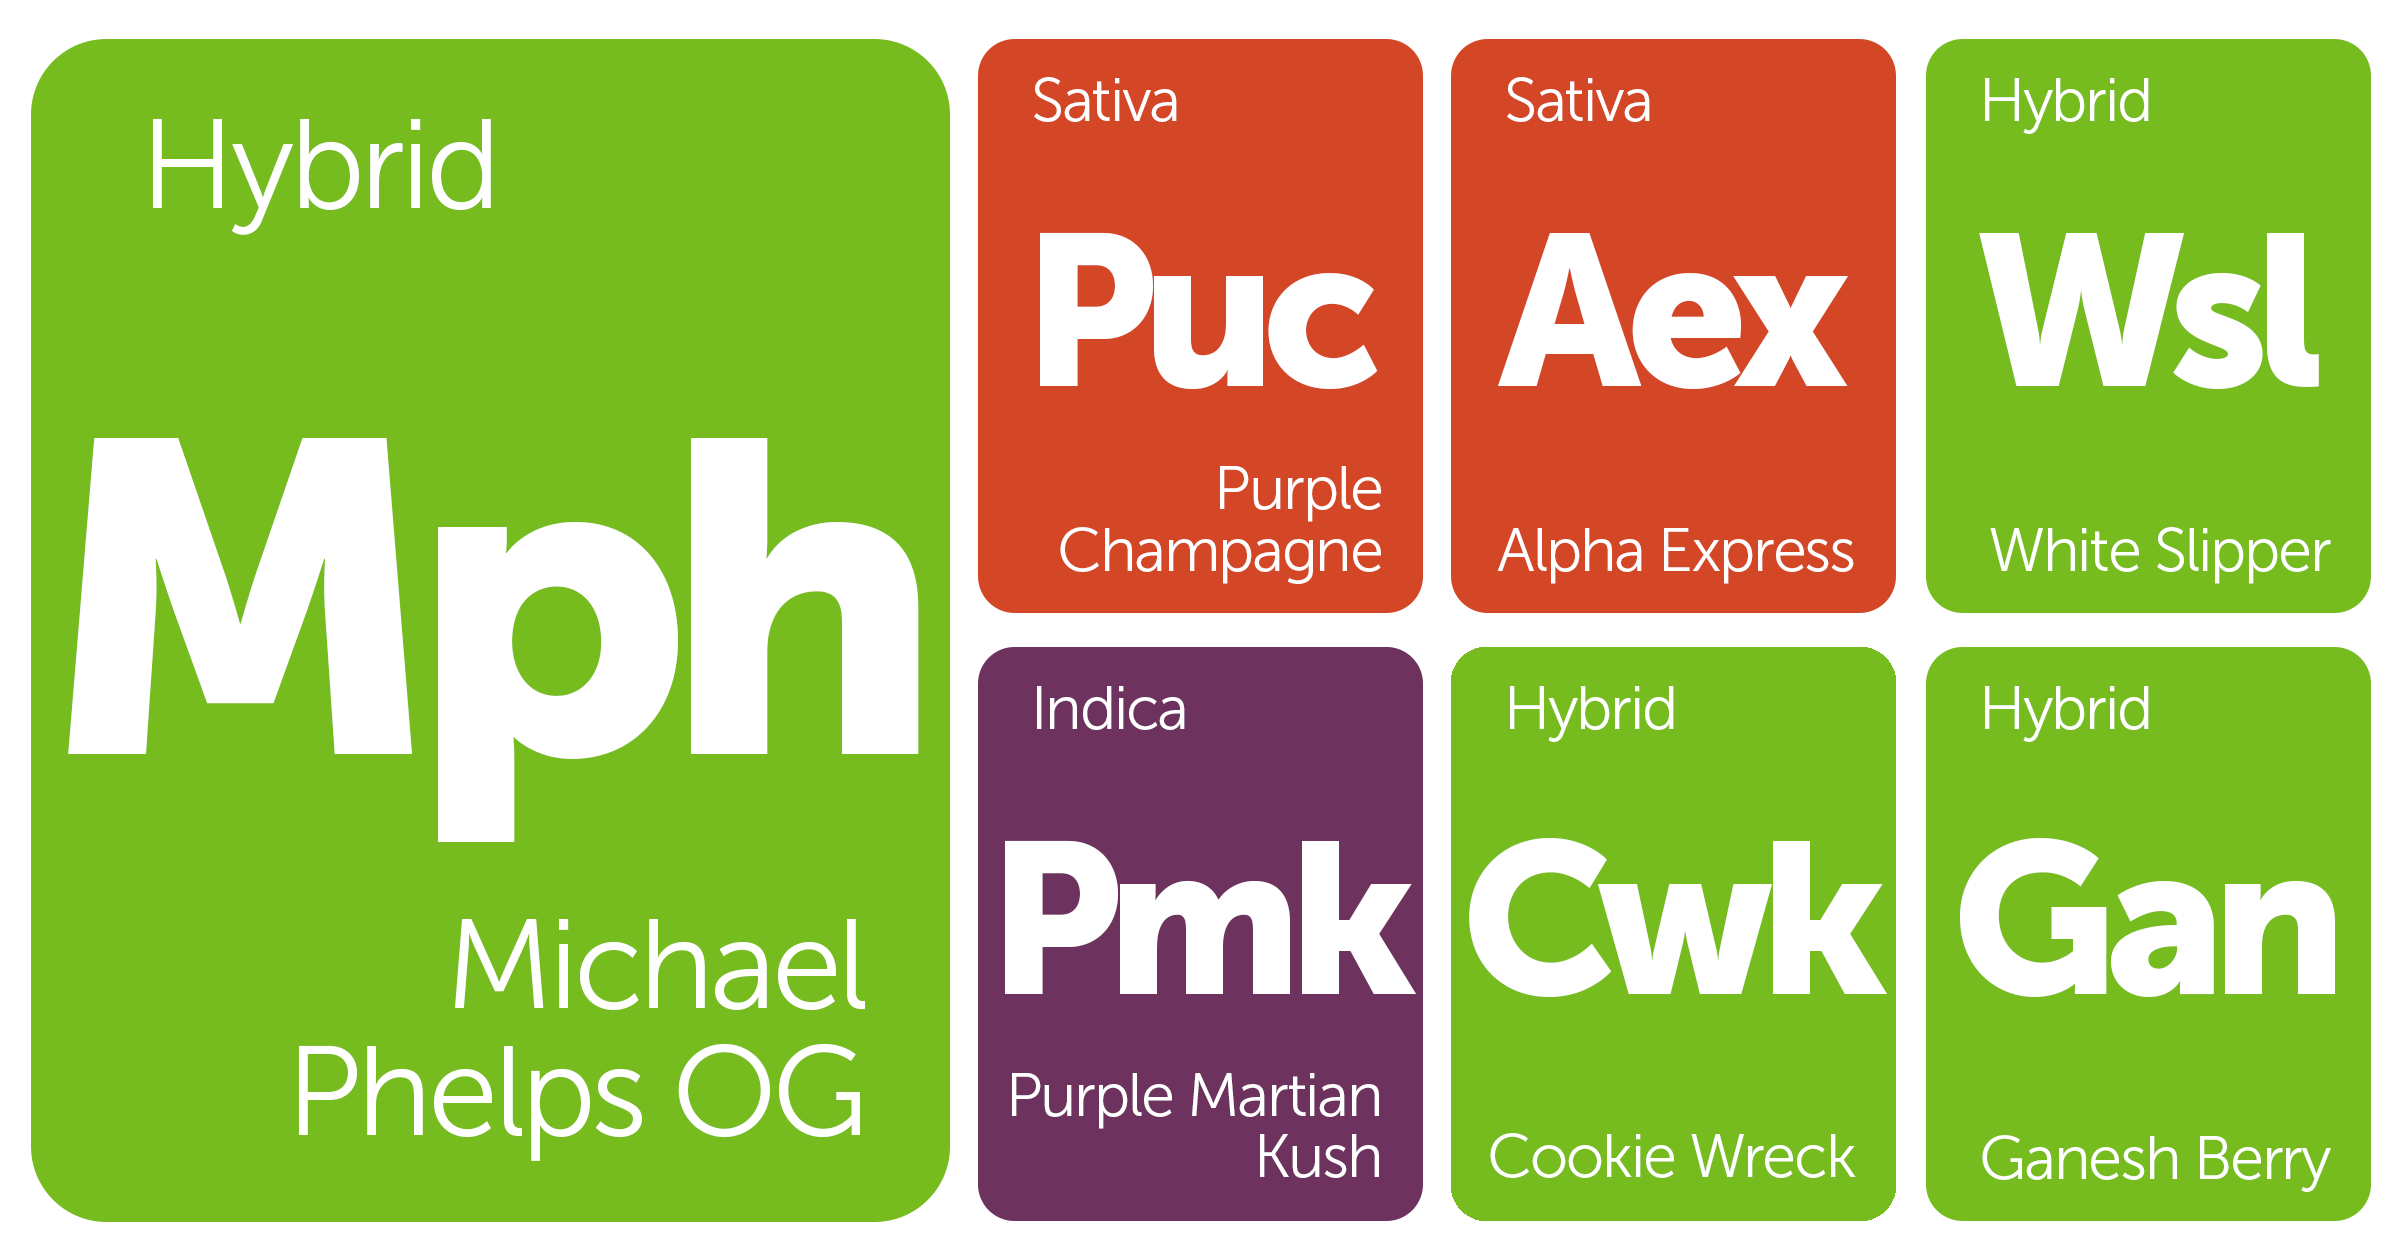 New Strains Alert: Michael Phelps OG, White Slipper, Ganesh Berry, Cookie Wreck, and More